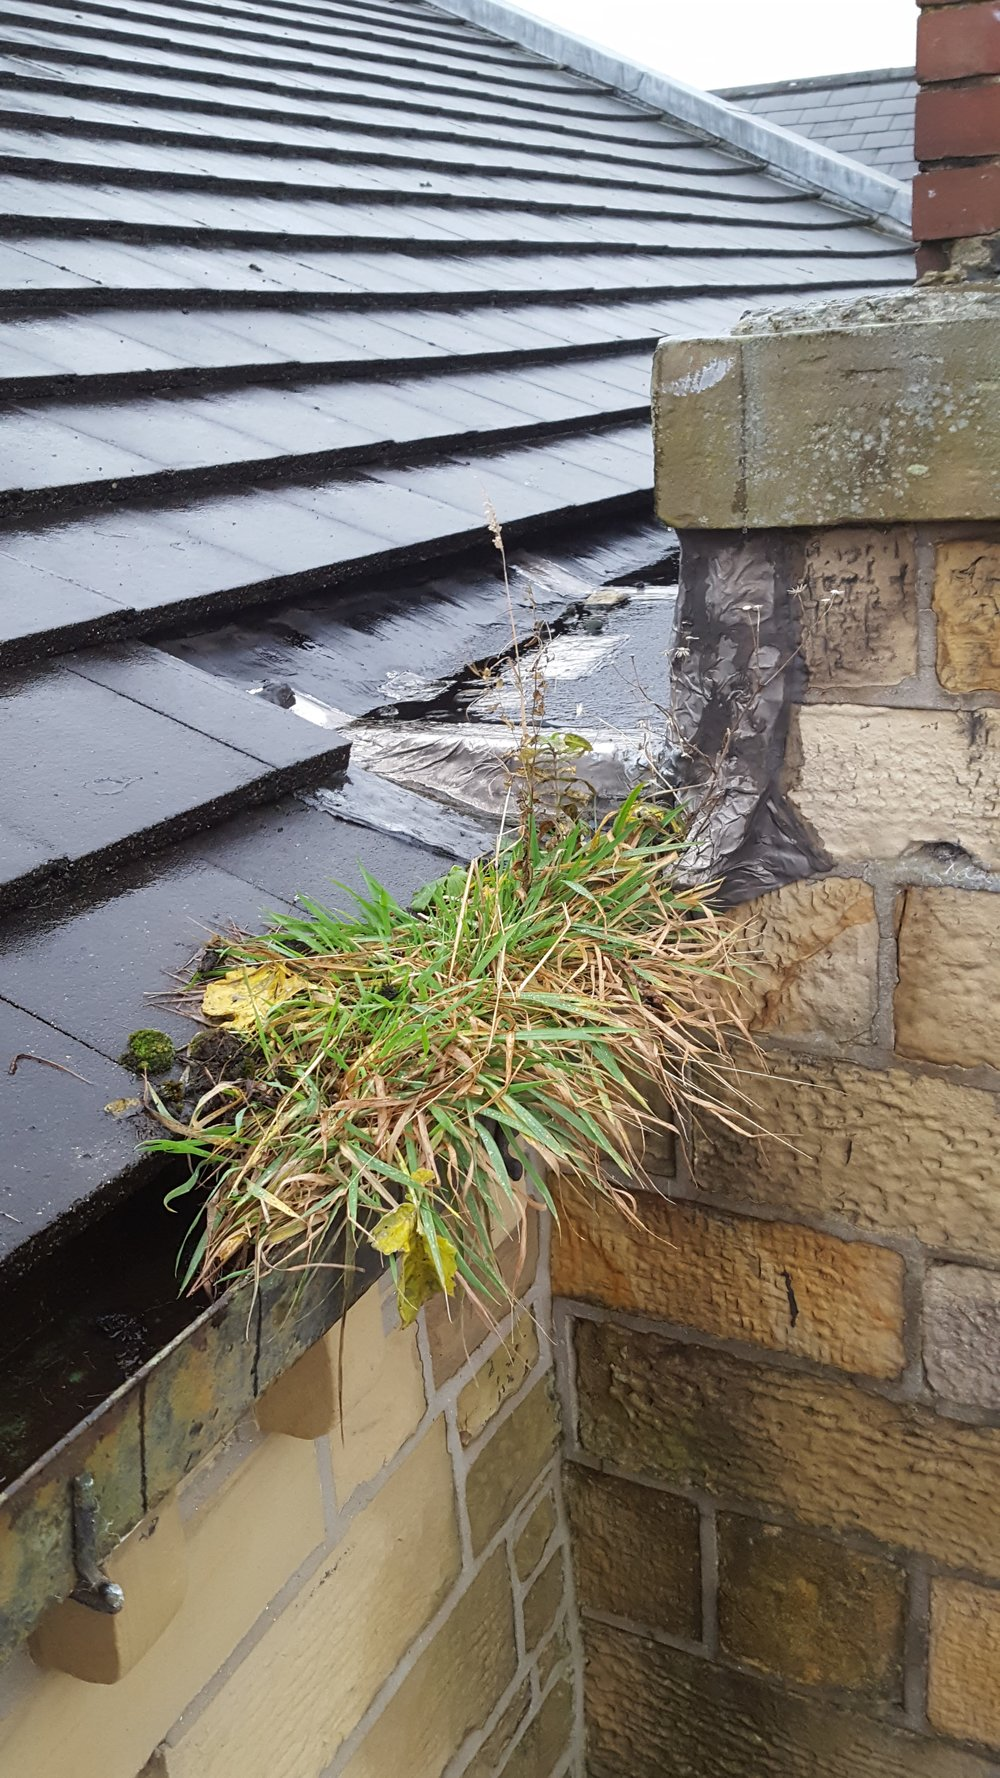 Overgrowth in the Roof Gutters